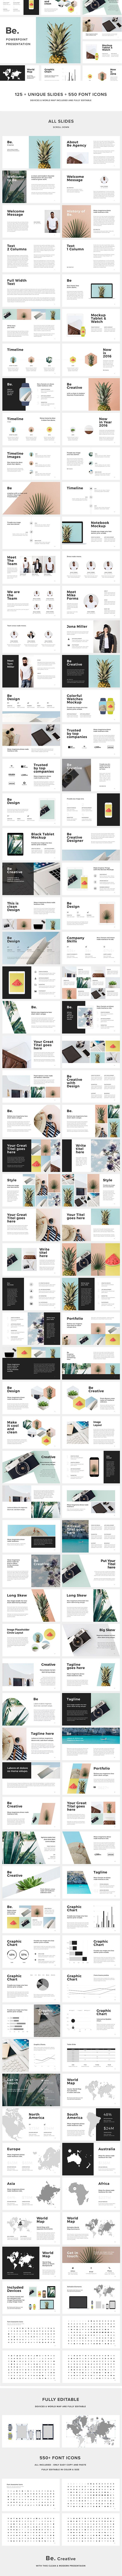 Be. Powerpoint Presentation Template. Download here: https://graphicriver.net/item/be-powerpoint-presentation/17026475?ref=ksioks